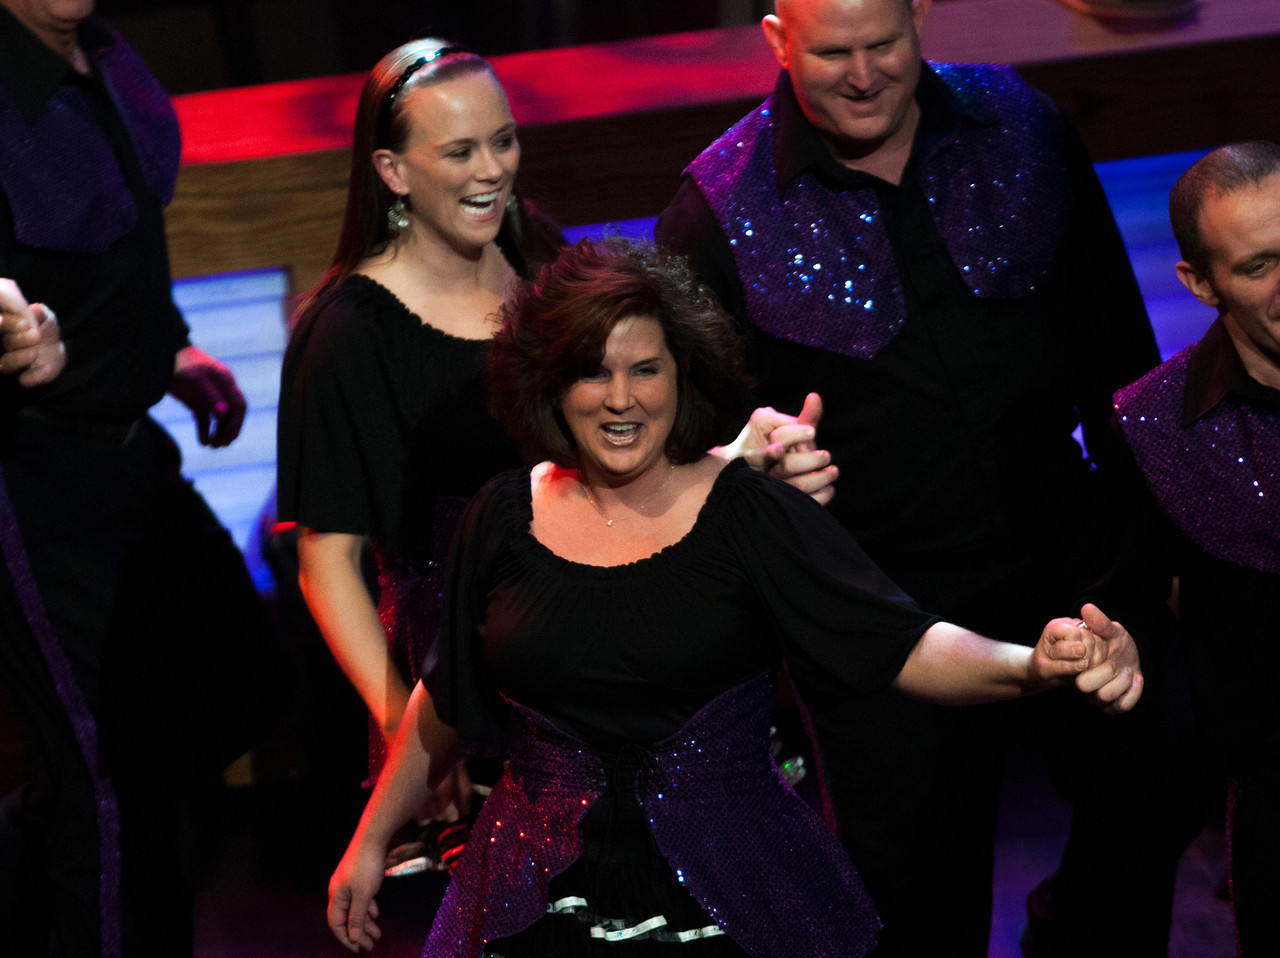 Square dancers at the Grand Ole Opry 87th Birthday Party in Nashville,Tennessee.